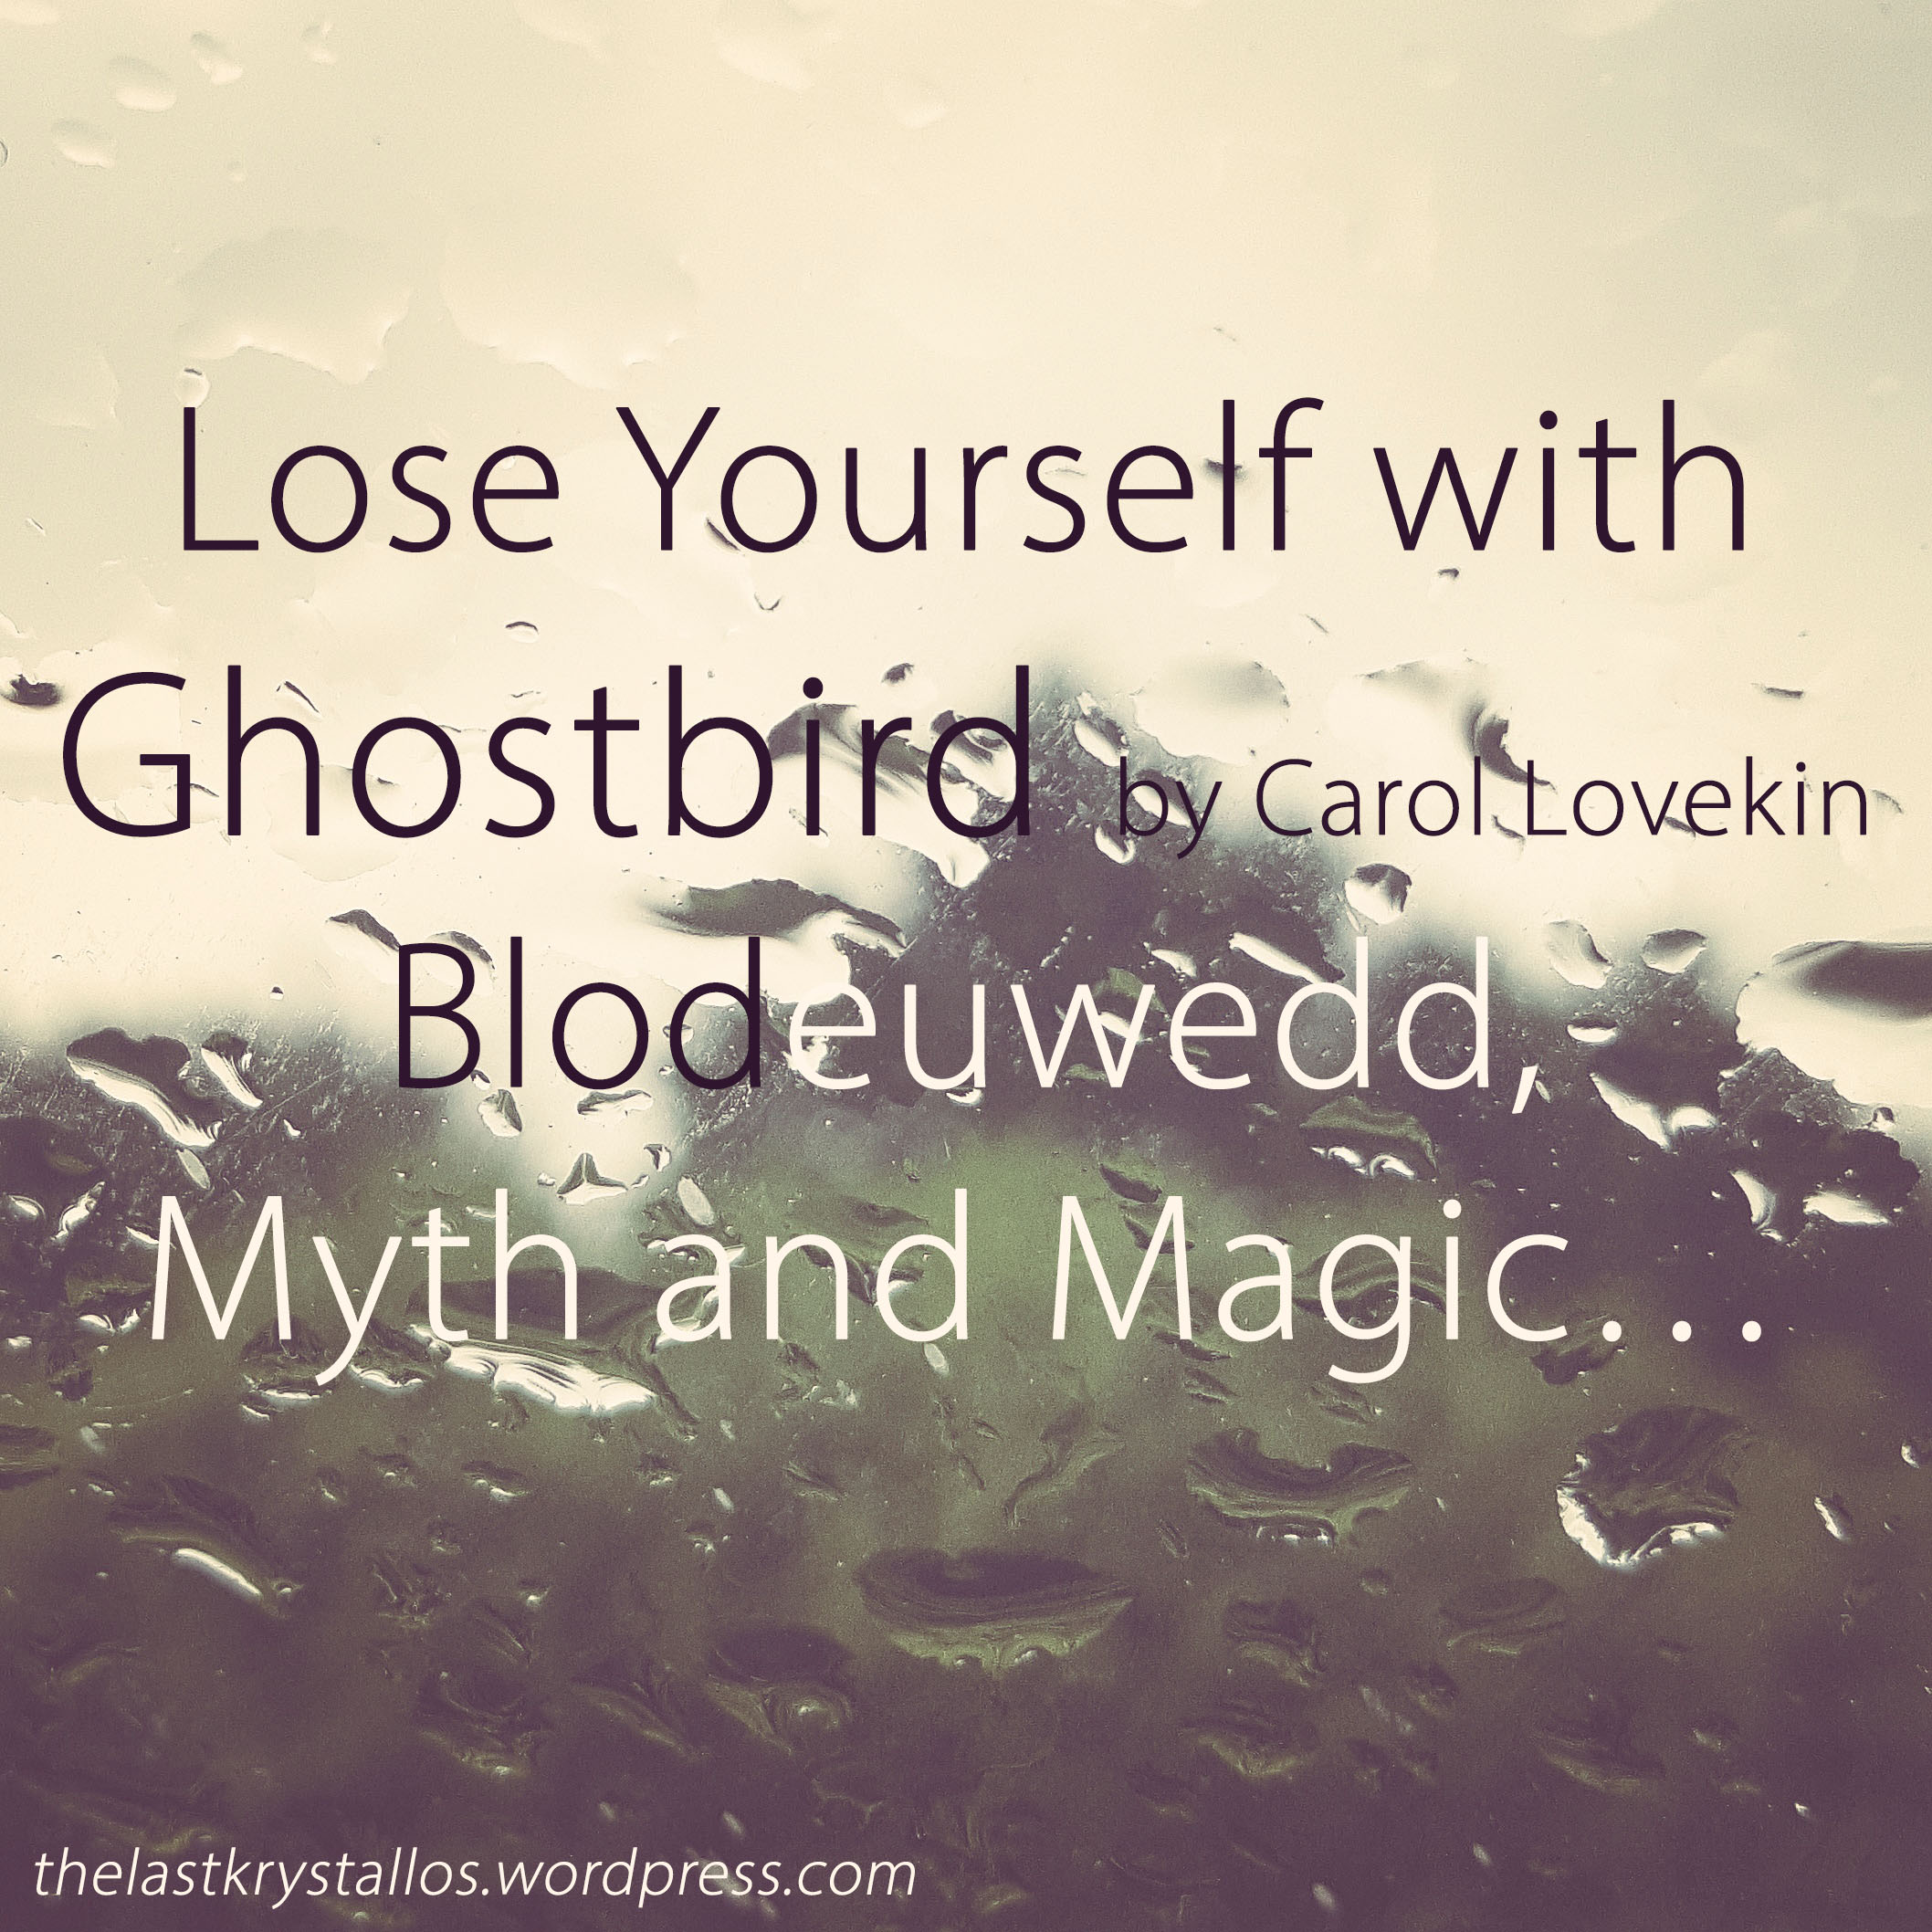 Lose Yourself with Ghostbird, Blodeuwedd, Myth and Magic... - The Last Krystallos